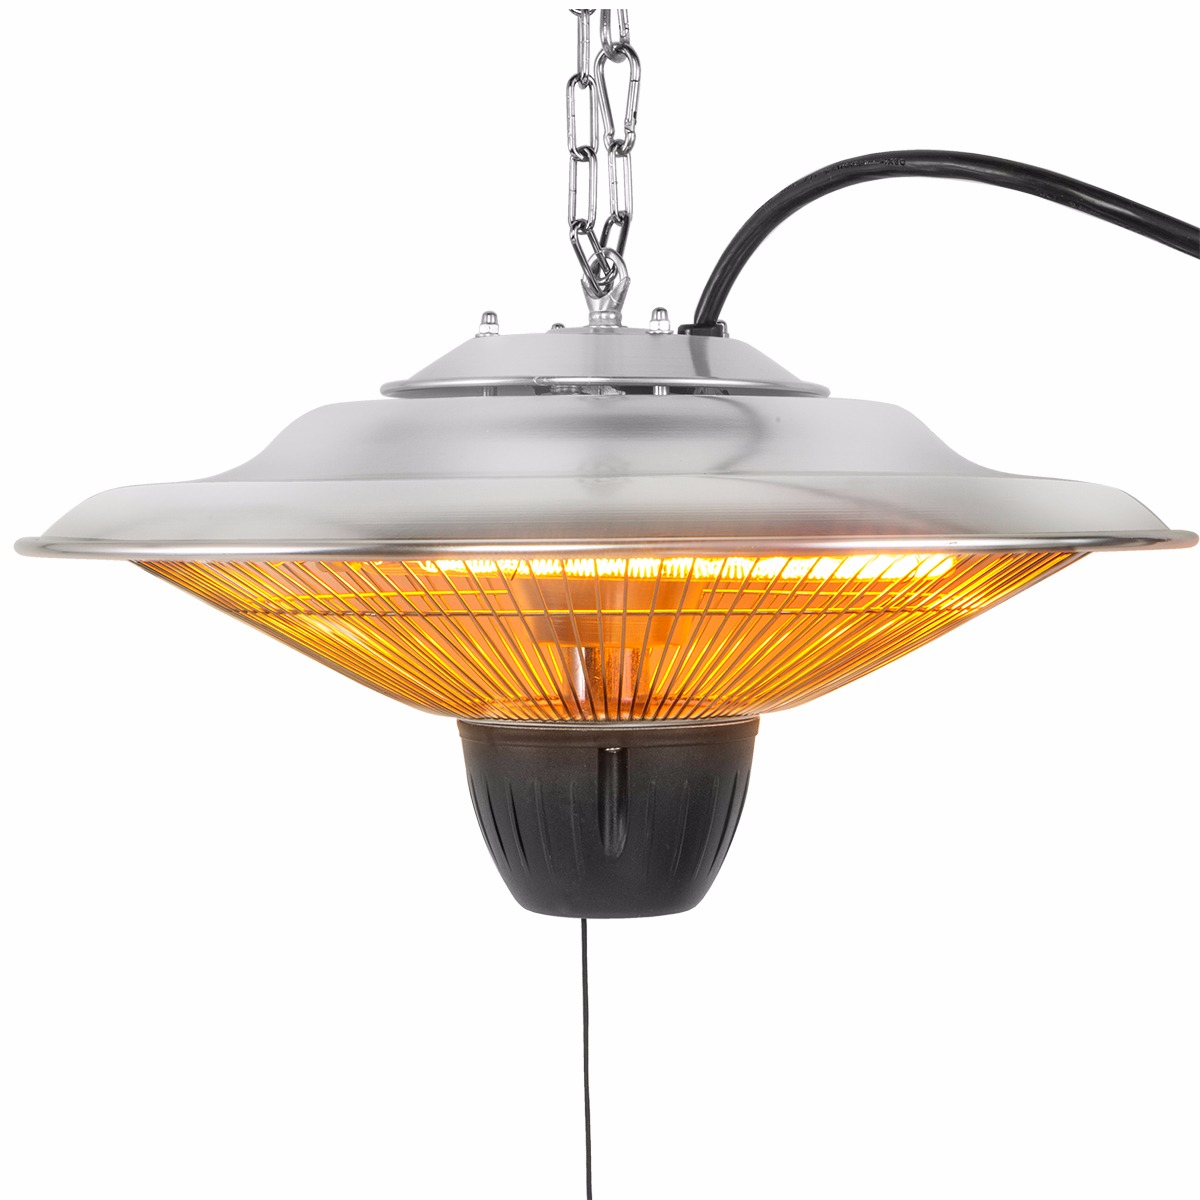 hanging patio heater. 17\ Hanging Patio Heater